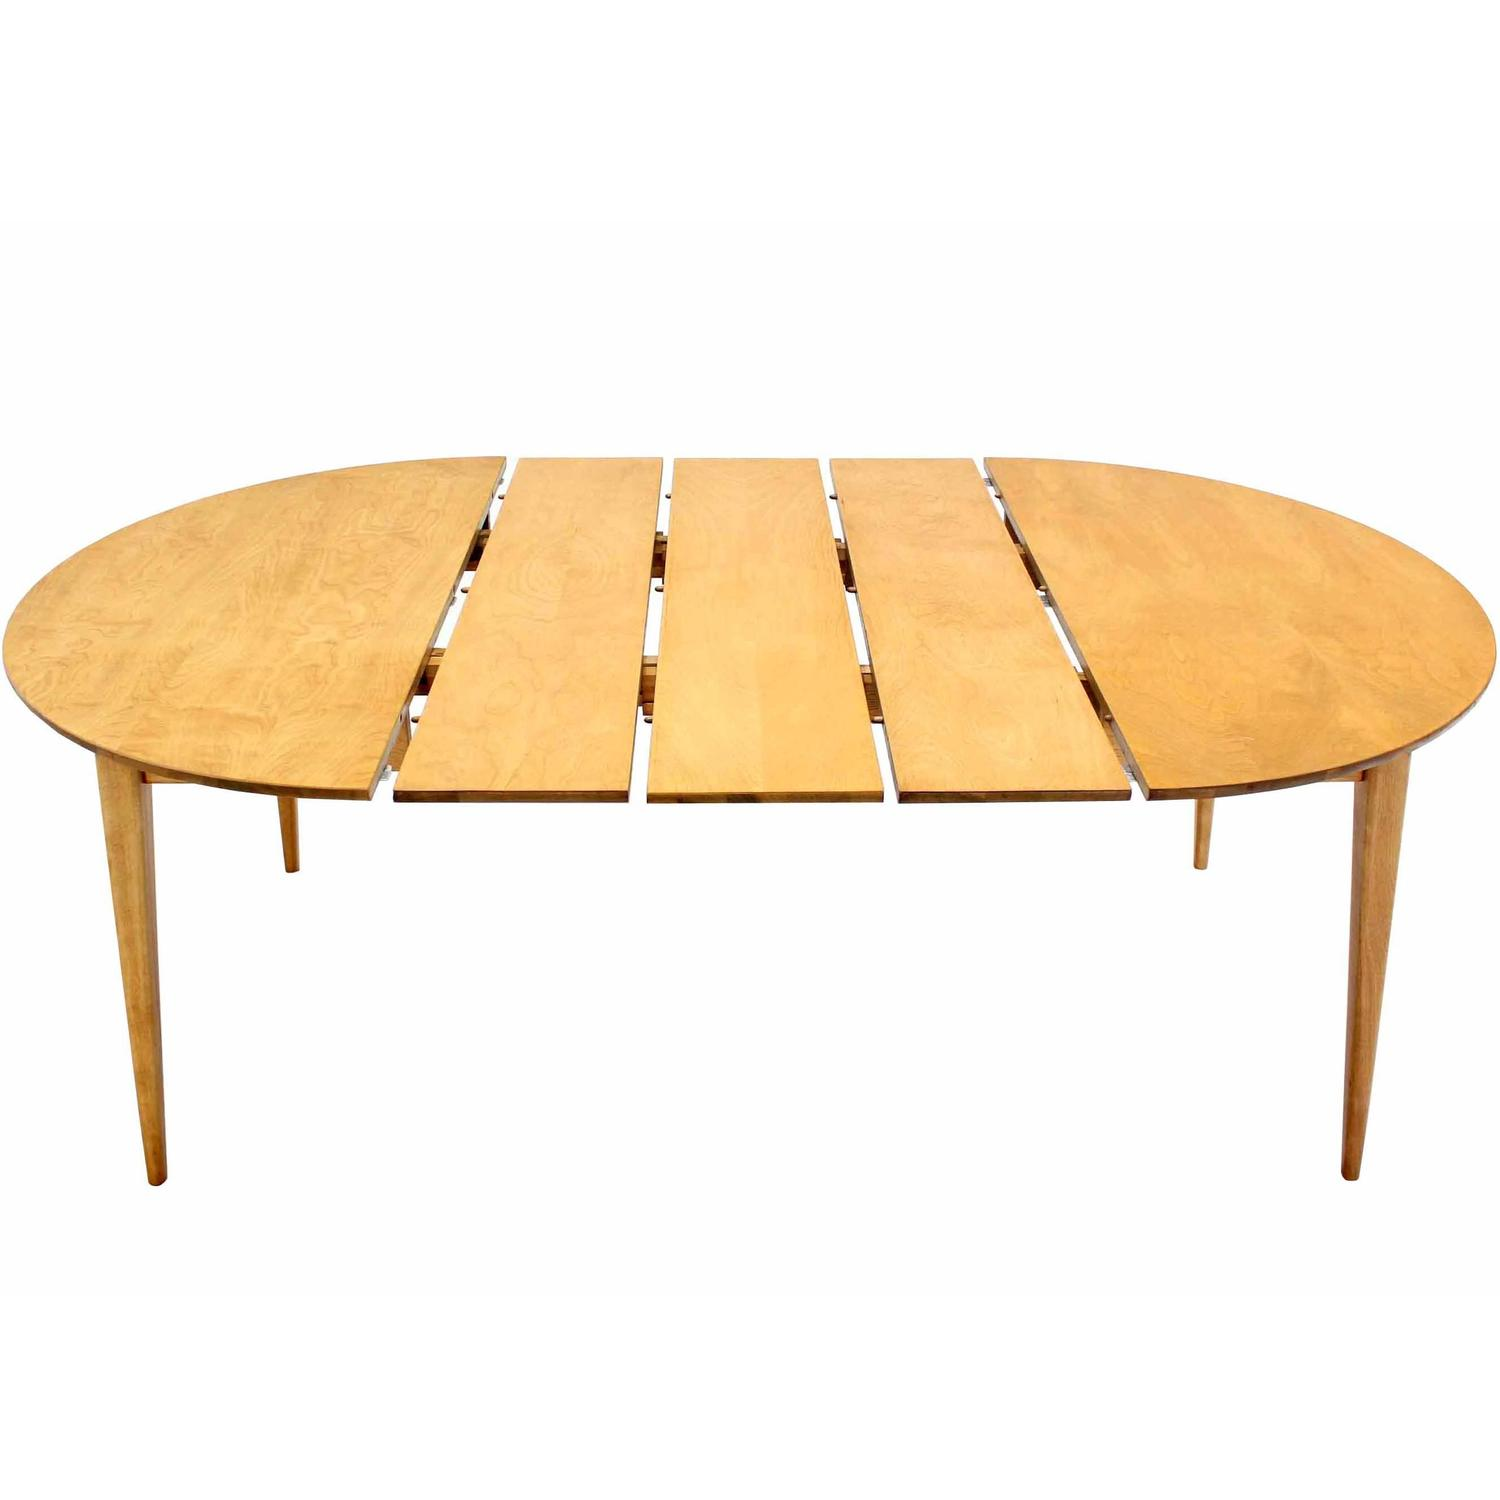 Round birch dining table with three leaves for sale at 1stdibs for 144 dining table